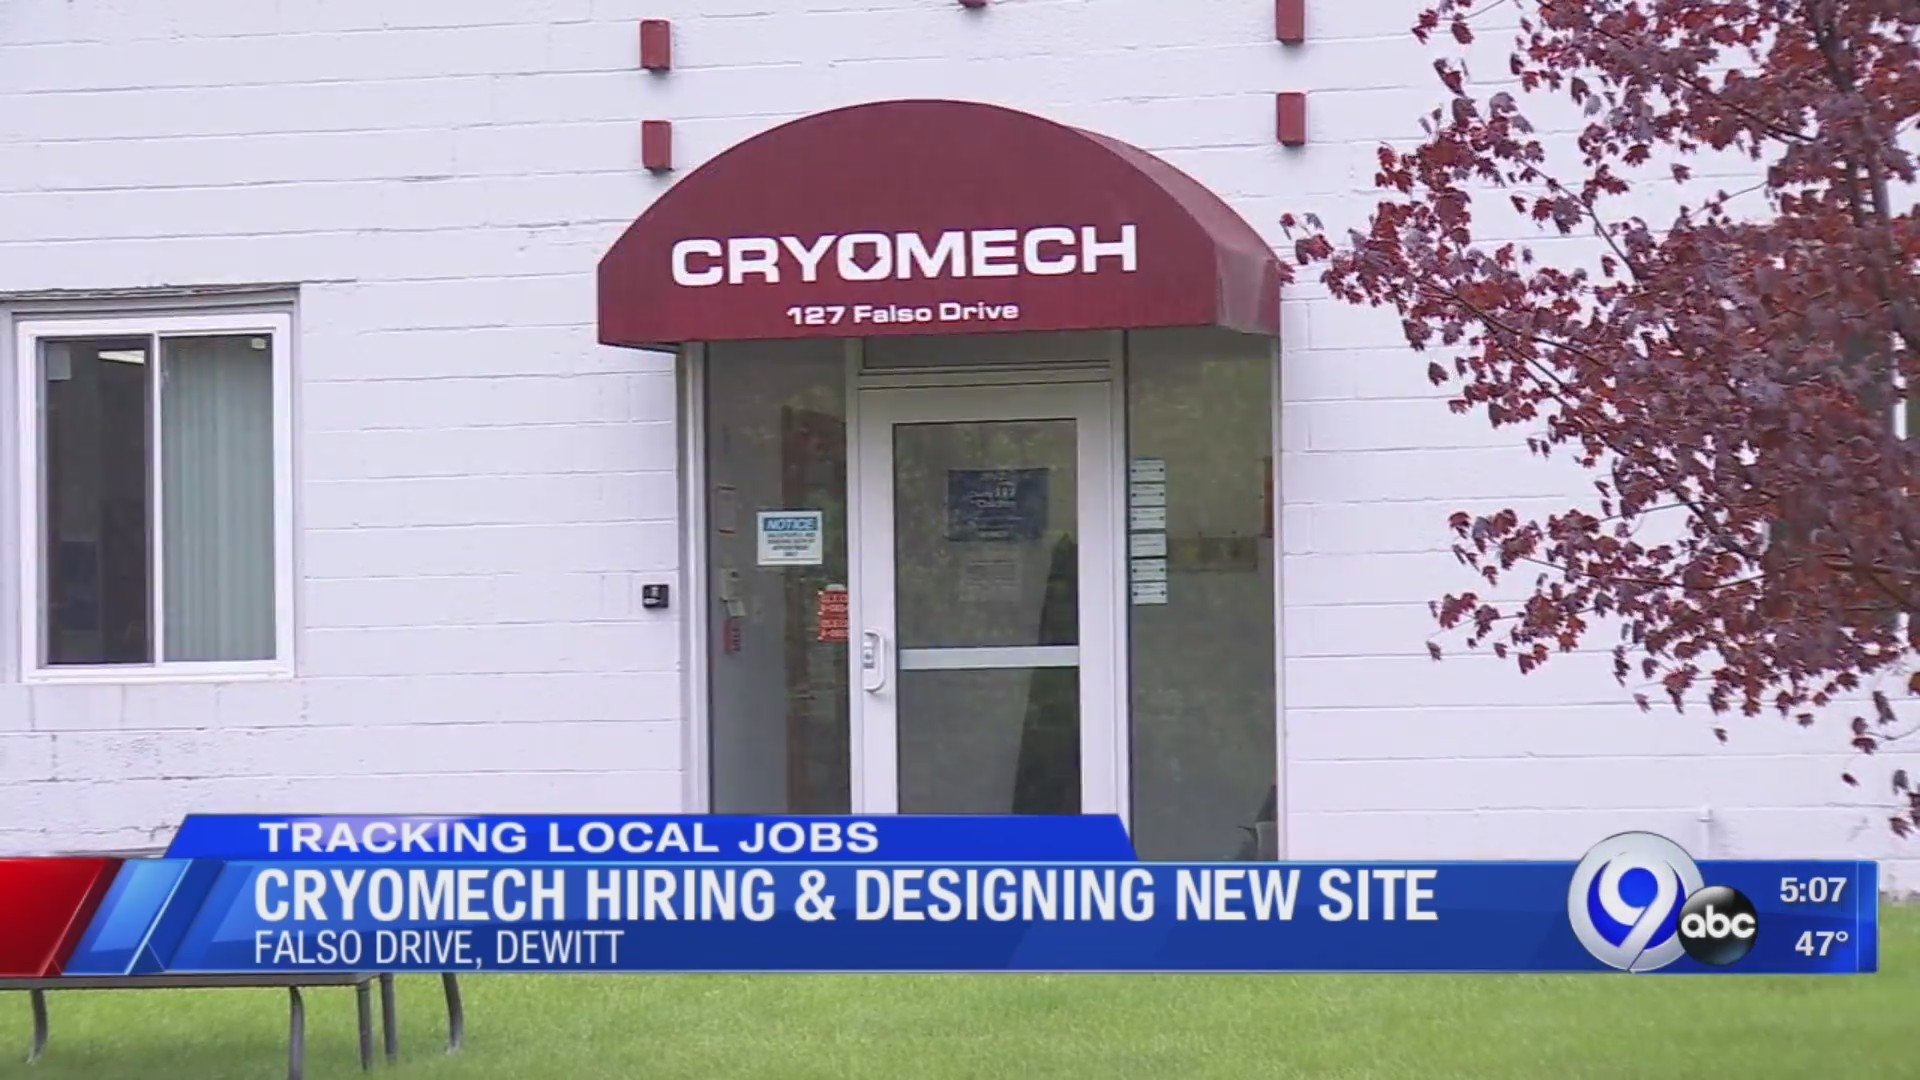 Cryomech_planning_to_relocate_and_hire_m_0_20190514211814